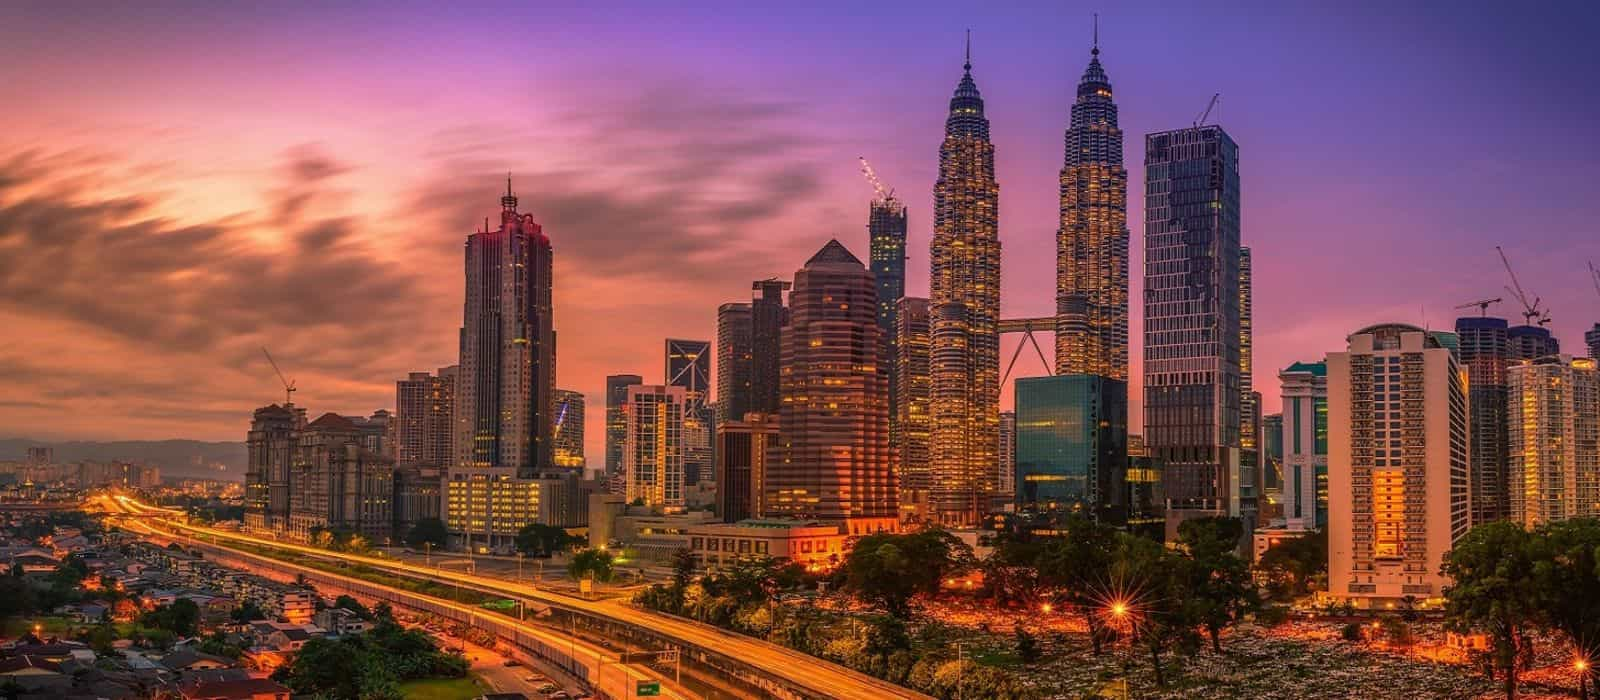 Malaysia Local Business Listing Sites 2019